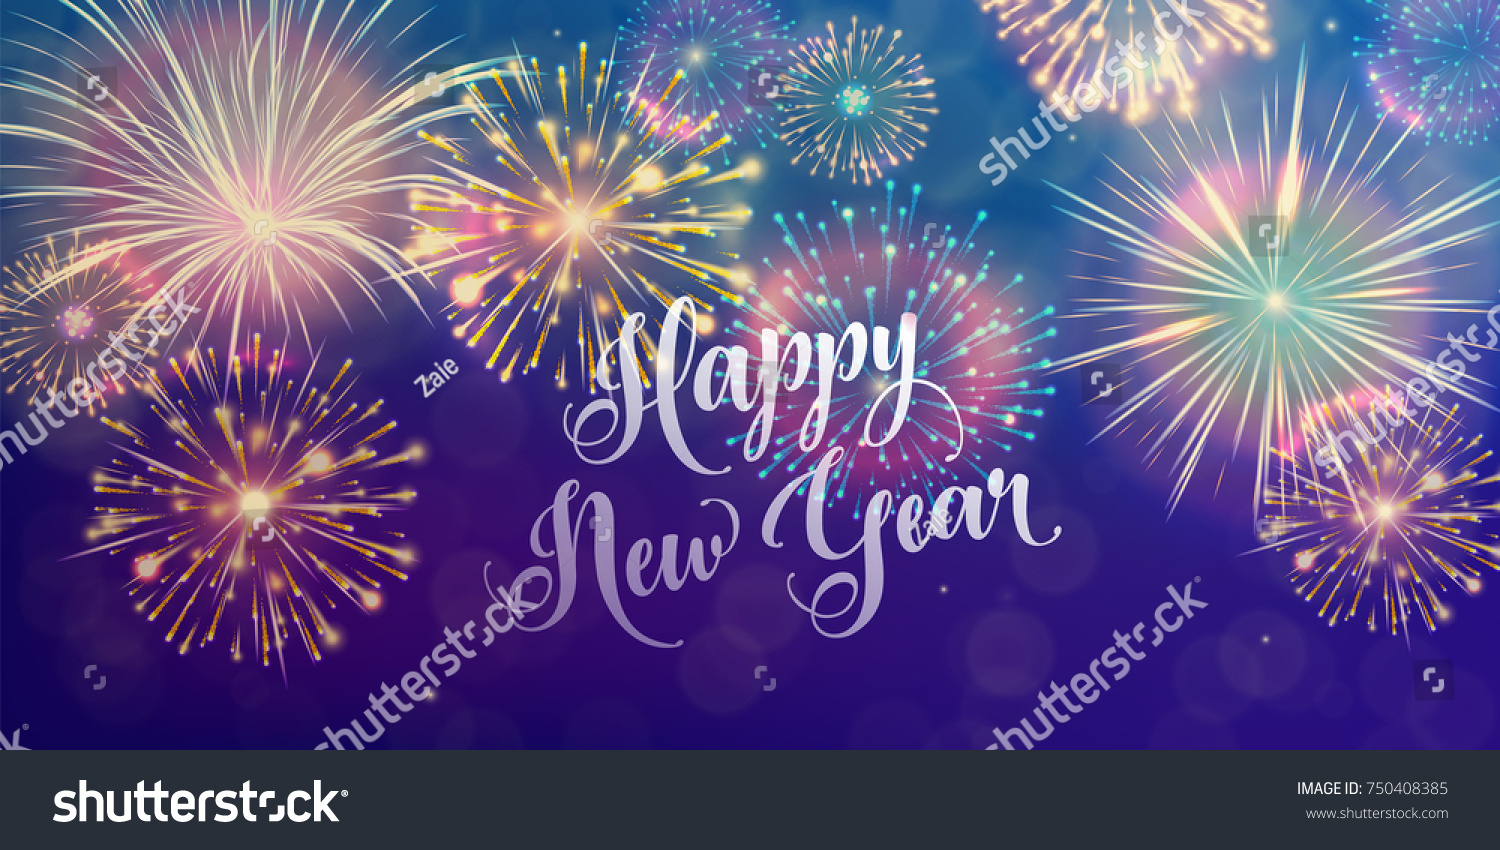 happy new year holiday banner background seasons greetings color fireworks design concept vector